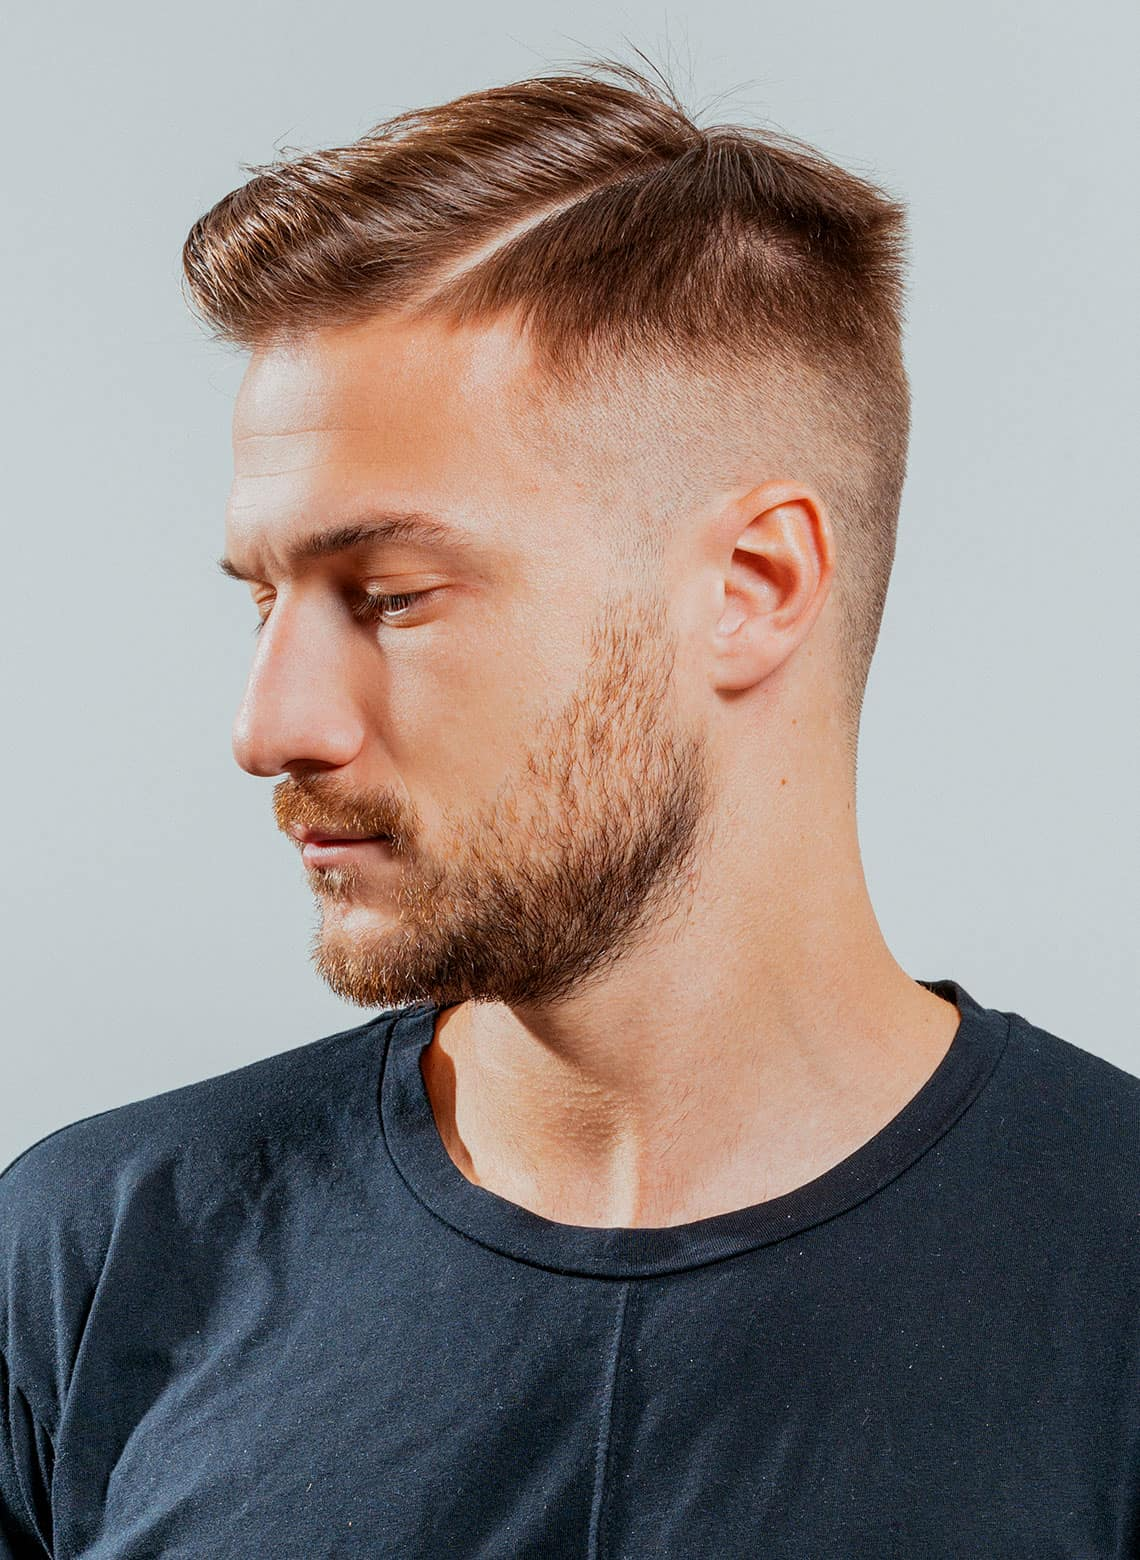 man with high fade